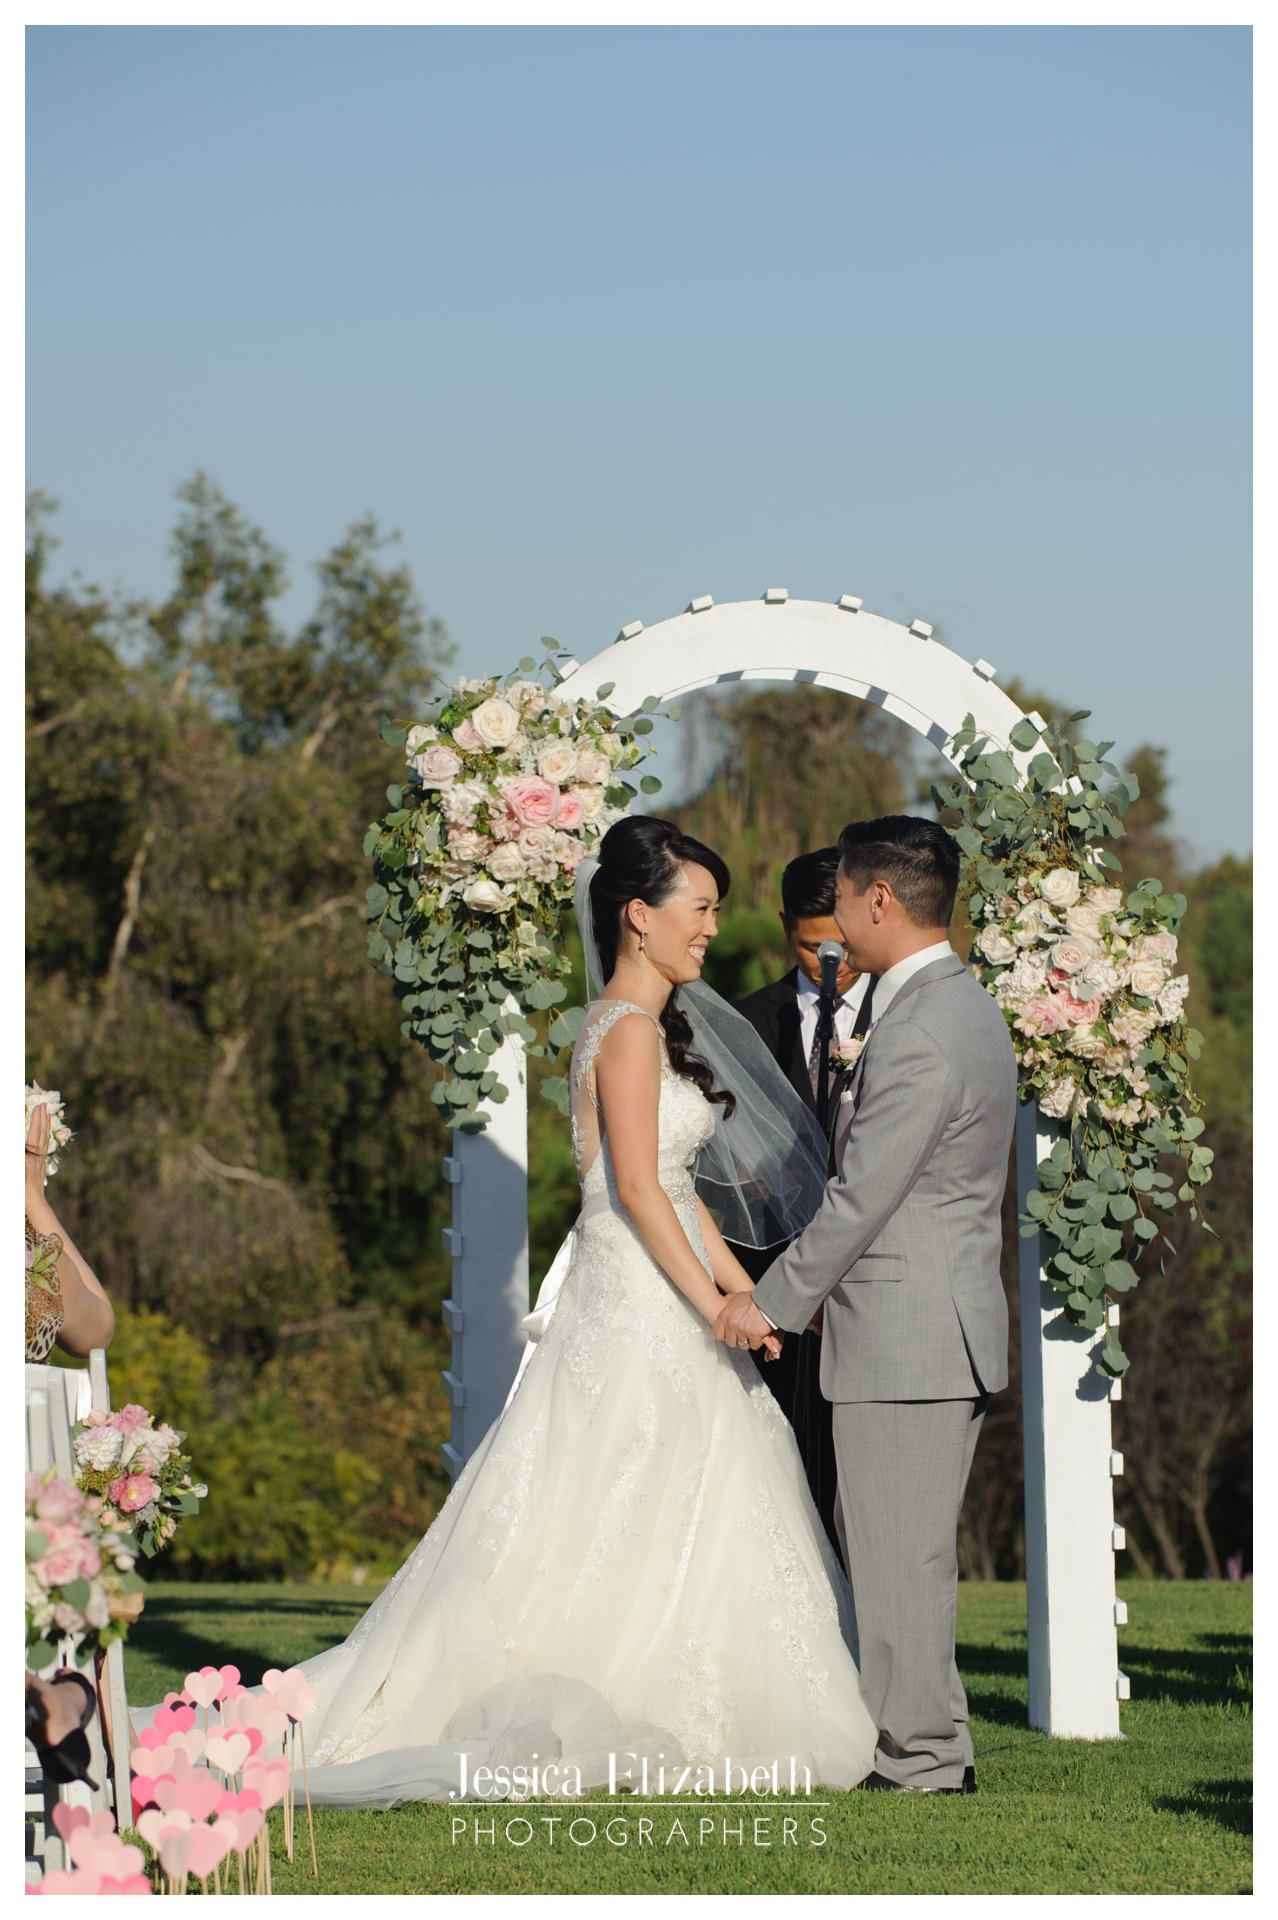 20-South Coast Botanic Garden Palos Verdes Wedding Photography by Jessica Elizabeth